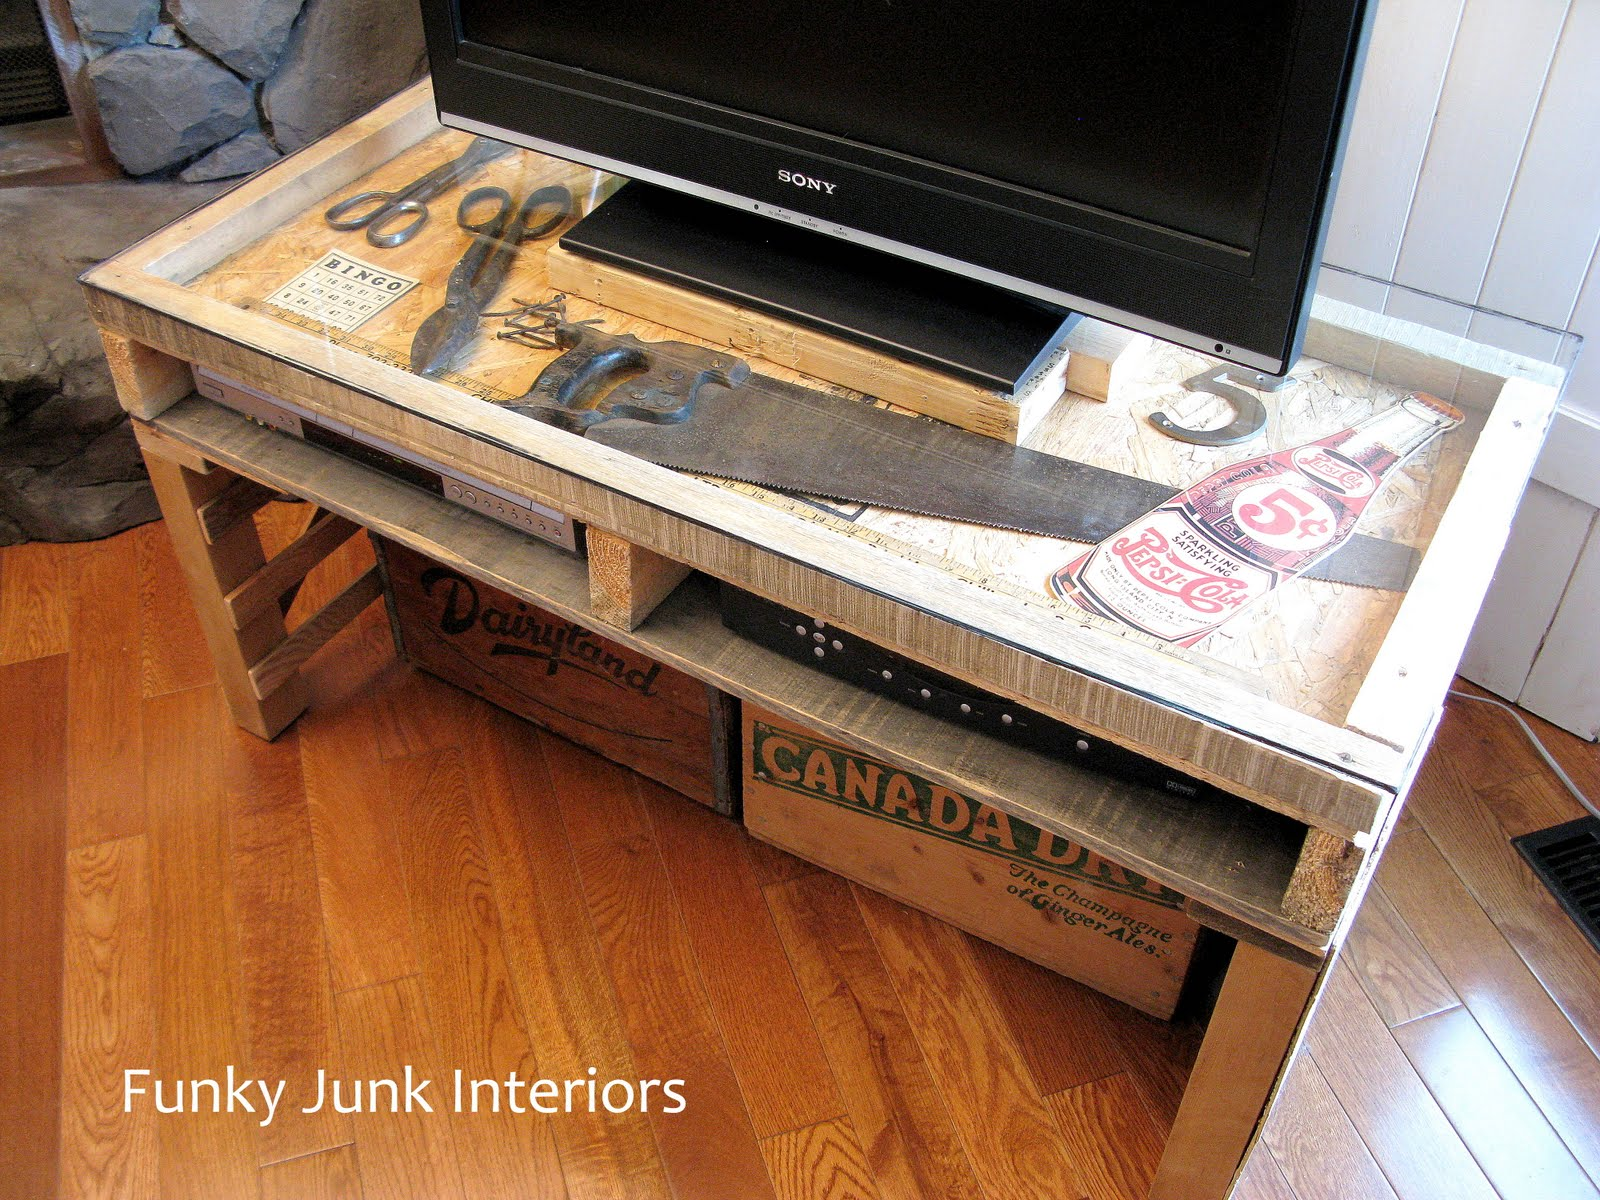 Tv Stands From Wooden Pallet Recycled Things - The